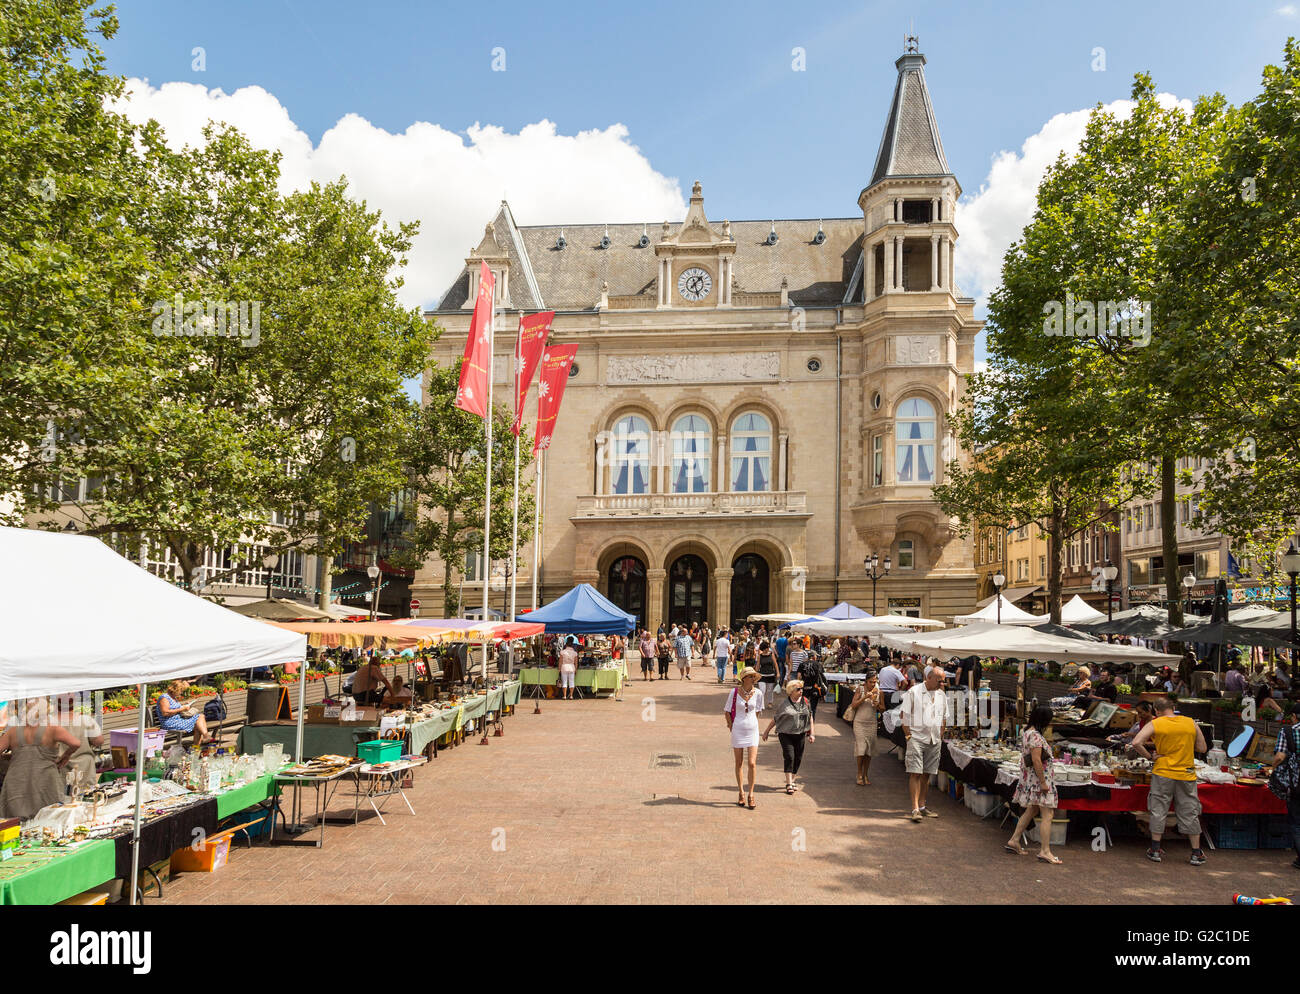 Antique market in street, Luxembourg - Stock Image